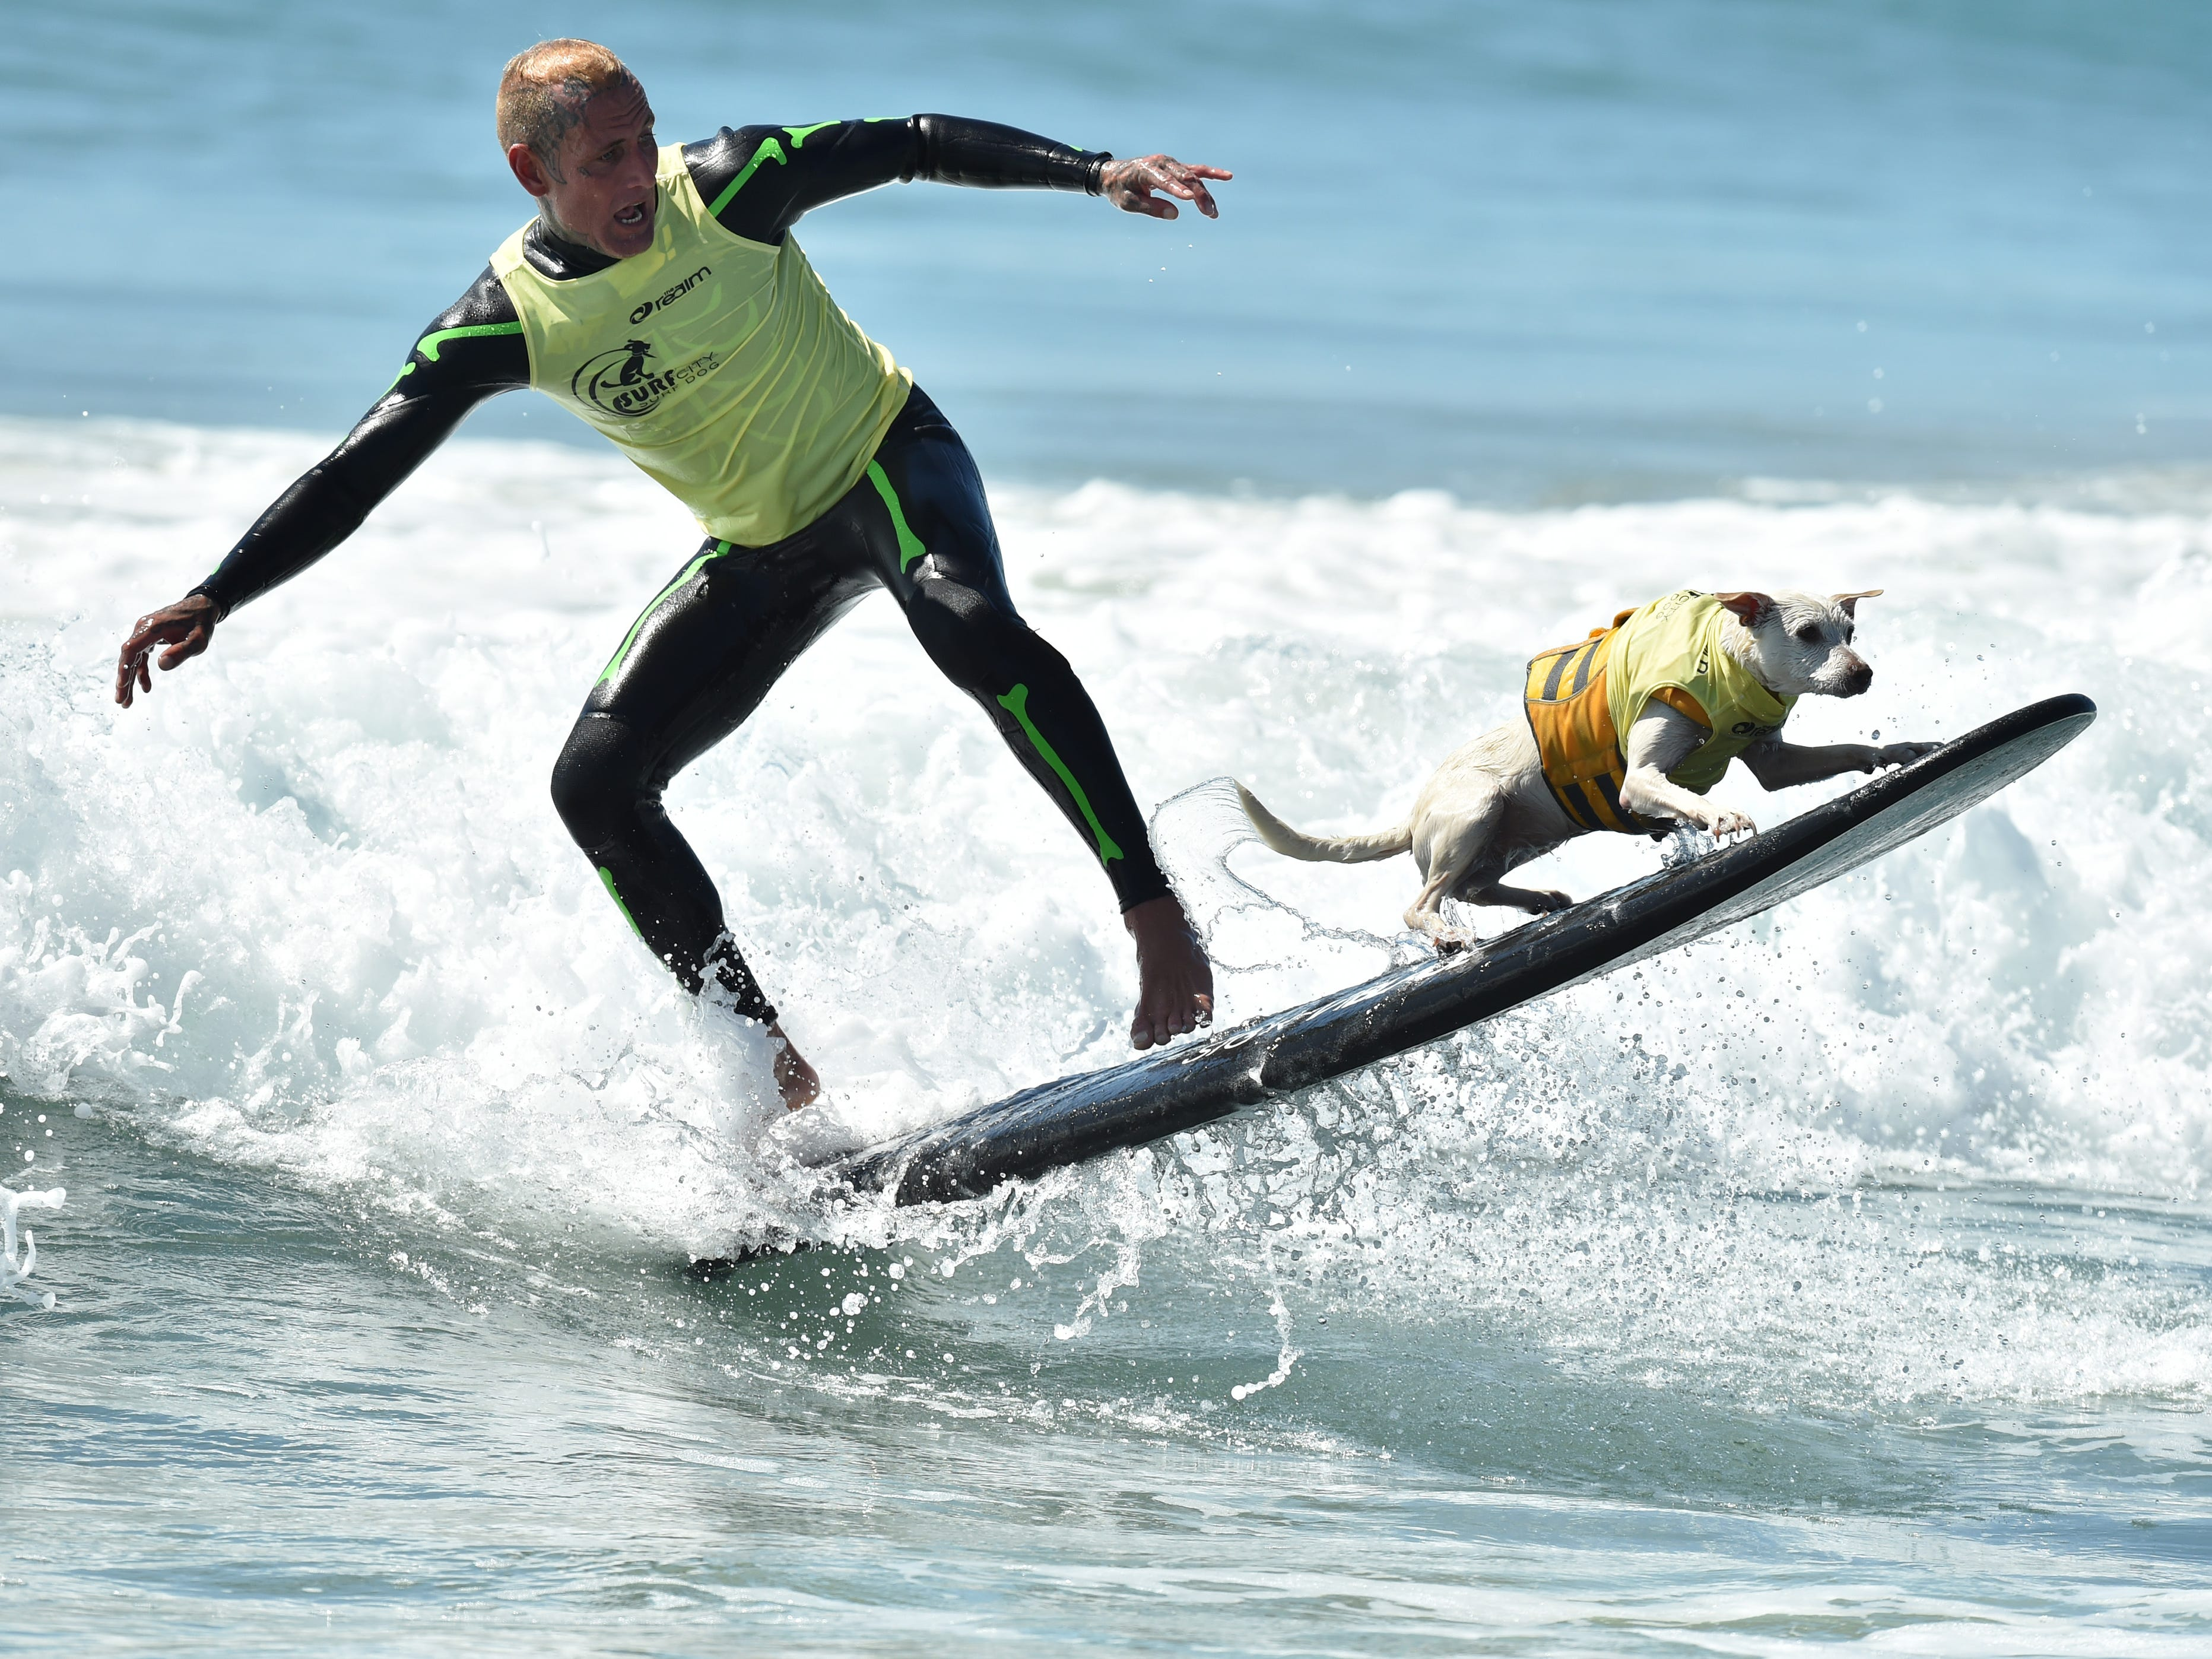 Sugar the Surfing Dog and Ryan Rustan compete in the 10th Annual Surf City Surf Dog competition on Sept. 29, 2018 in Huntington Beach, Calif.